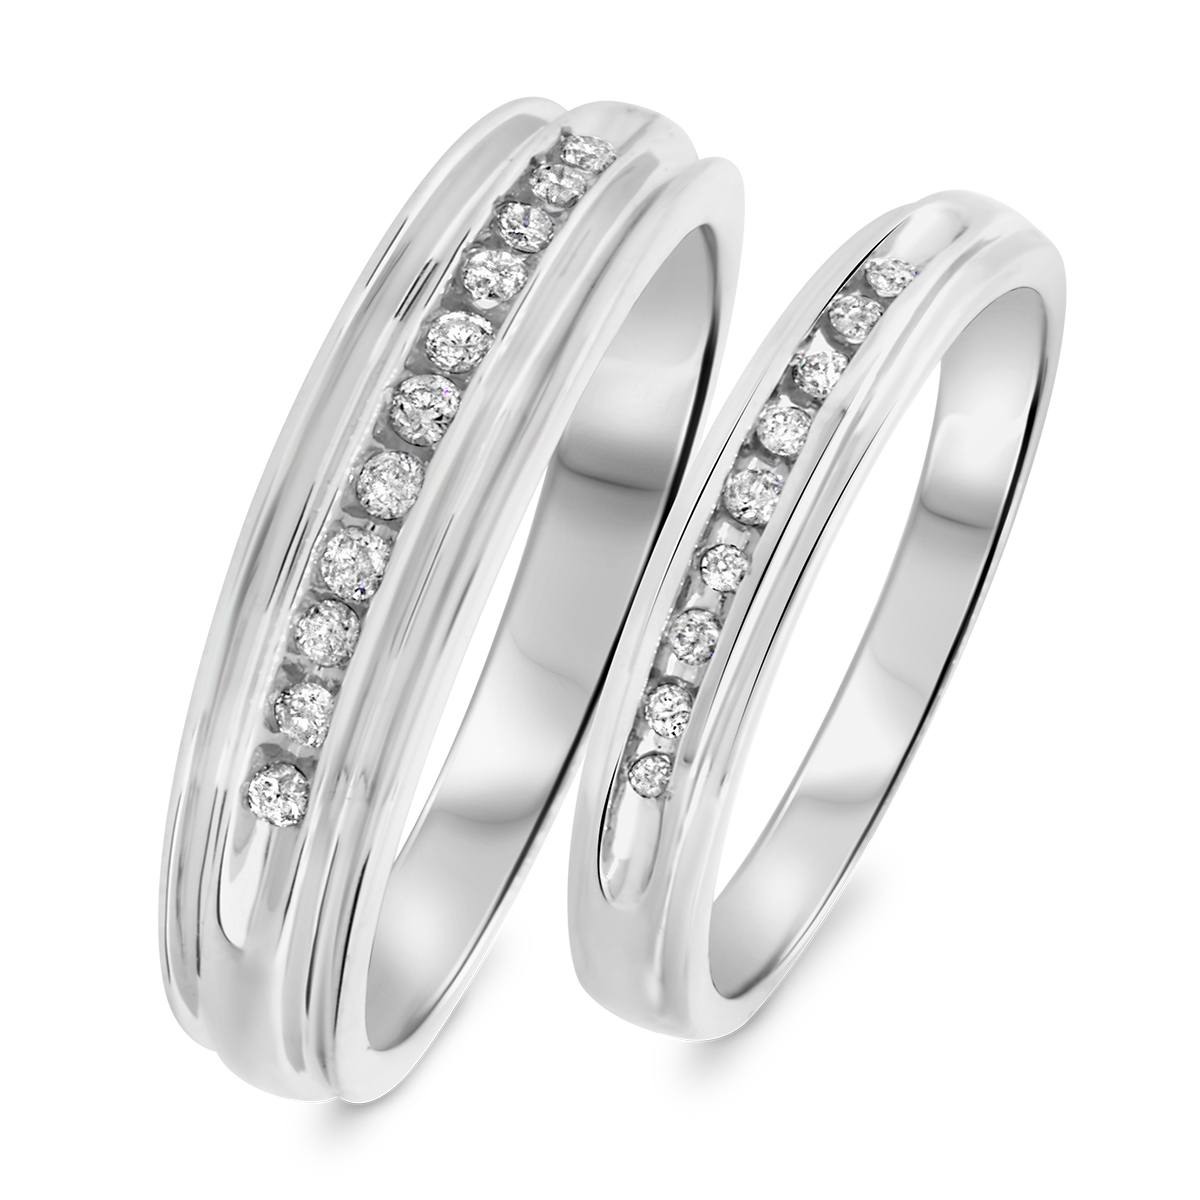 1/3 CT. T.W. Diamond His And Hers Wedding Band Set 14K White Gold